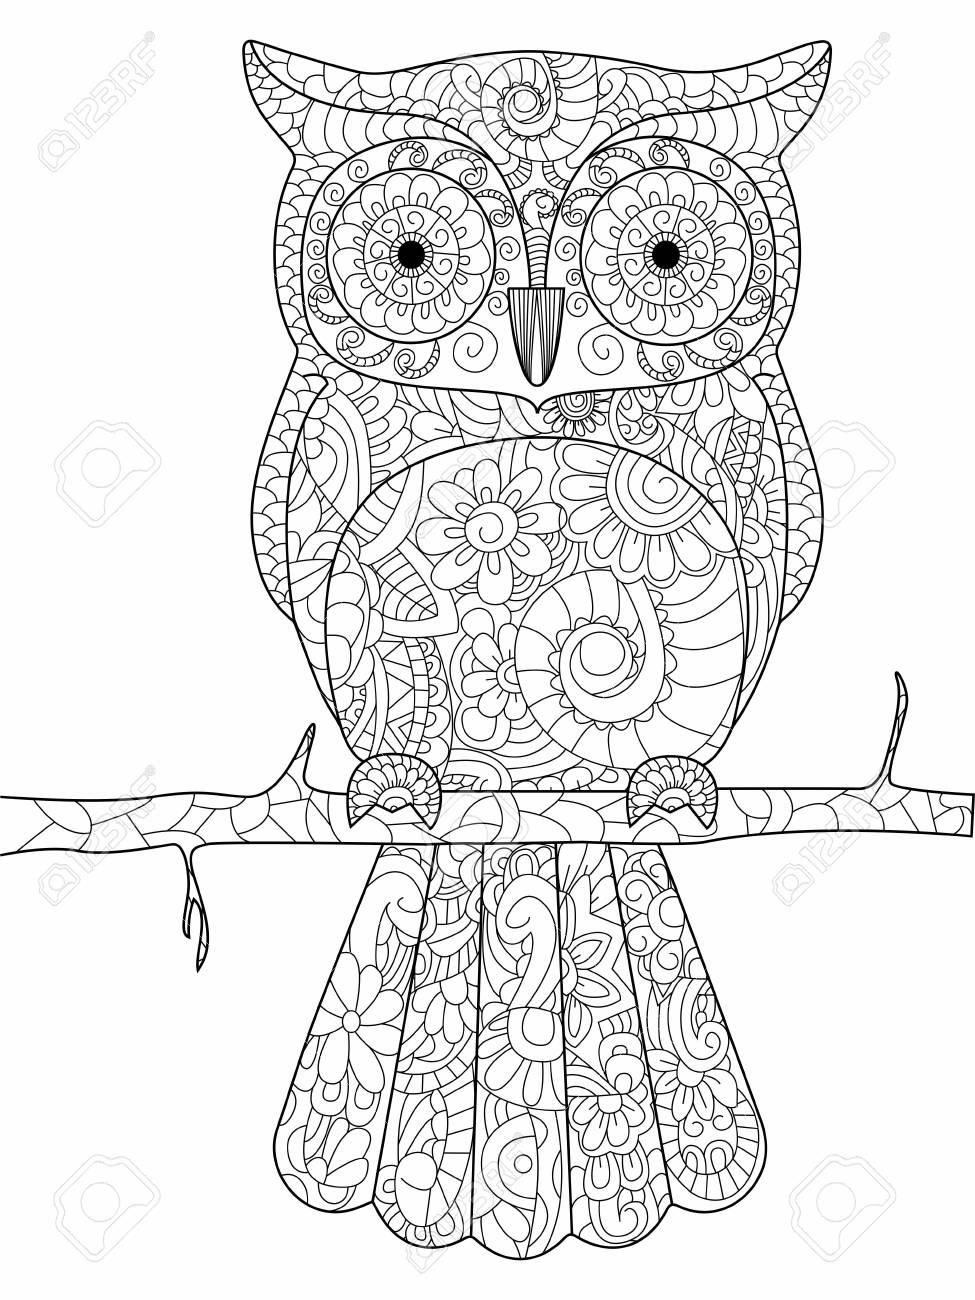 Owl On A Branch Coloring Book For Adults Illustration Anti Stress Adult